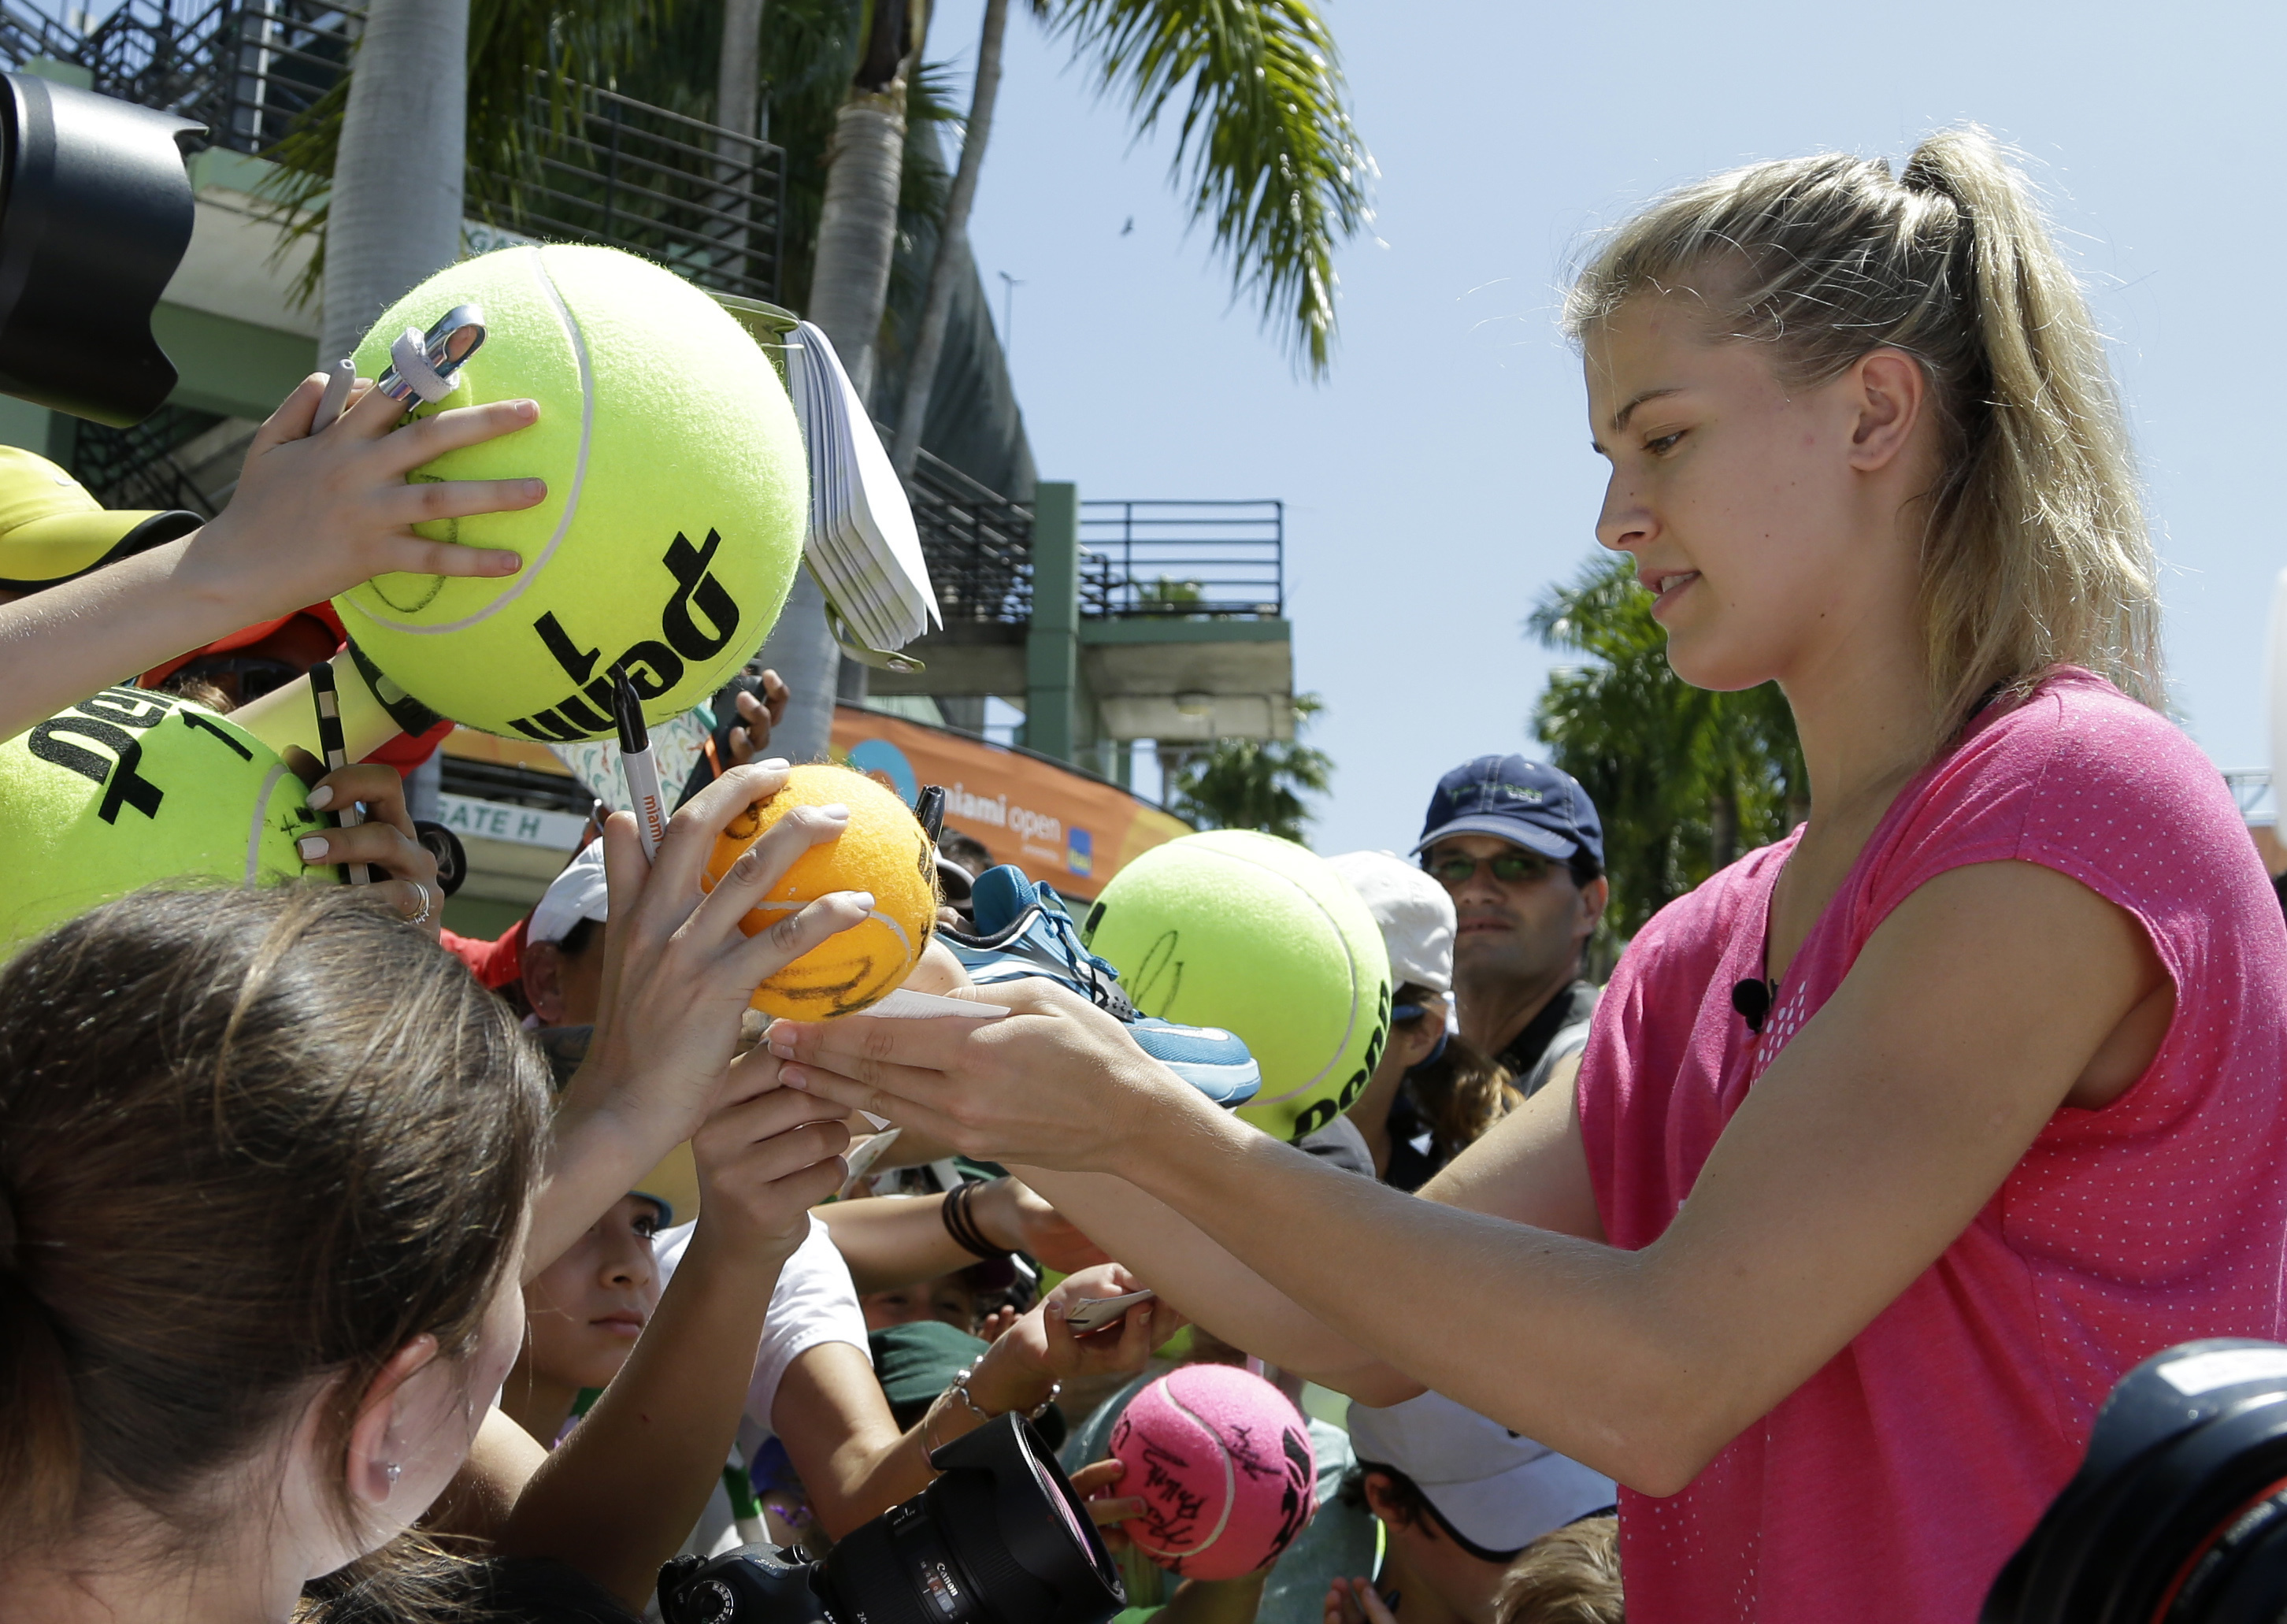 FILE - In this March 24, 2015, file photo, Genie Bouchard, of Canada, signs autographs at the Miami Open tennis tournament in Key Biscayne, Fla. Bouchard may have to go on a date with a fan in order to make good on a Twitter bet made during the Super Bowl